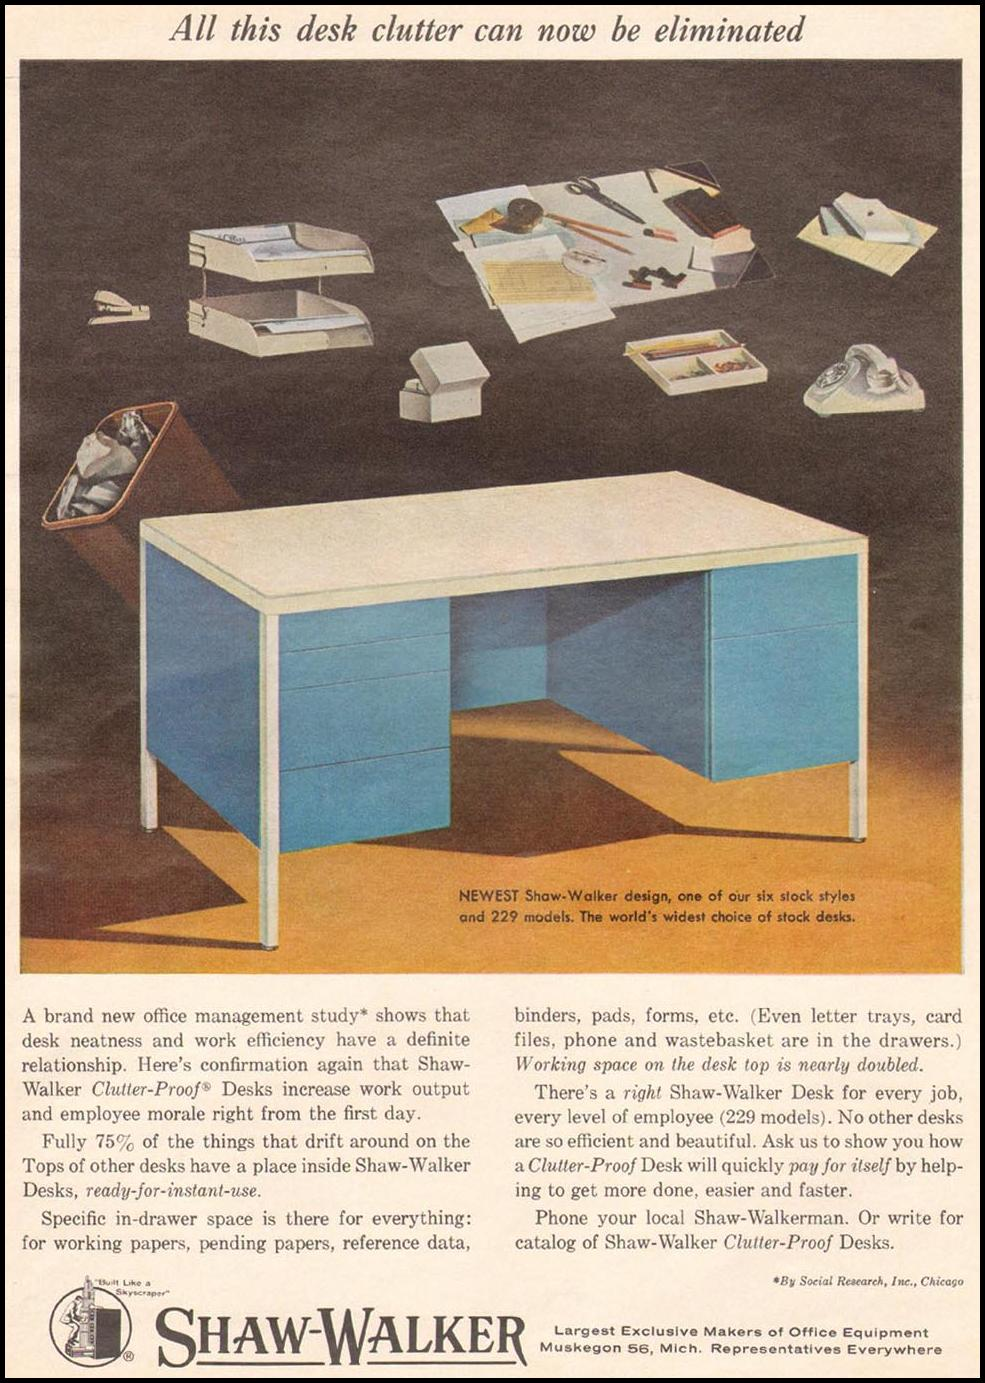 SHAW-WALKER CLUTTER-PROOF DESKS NEWSWEEK 10/12/1964